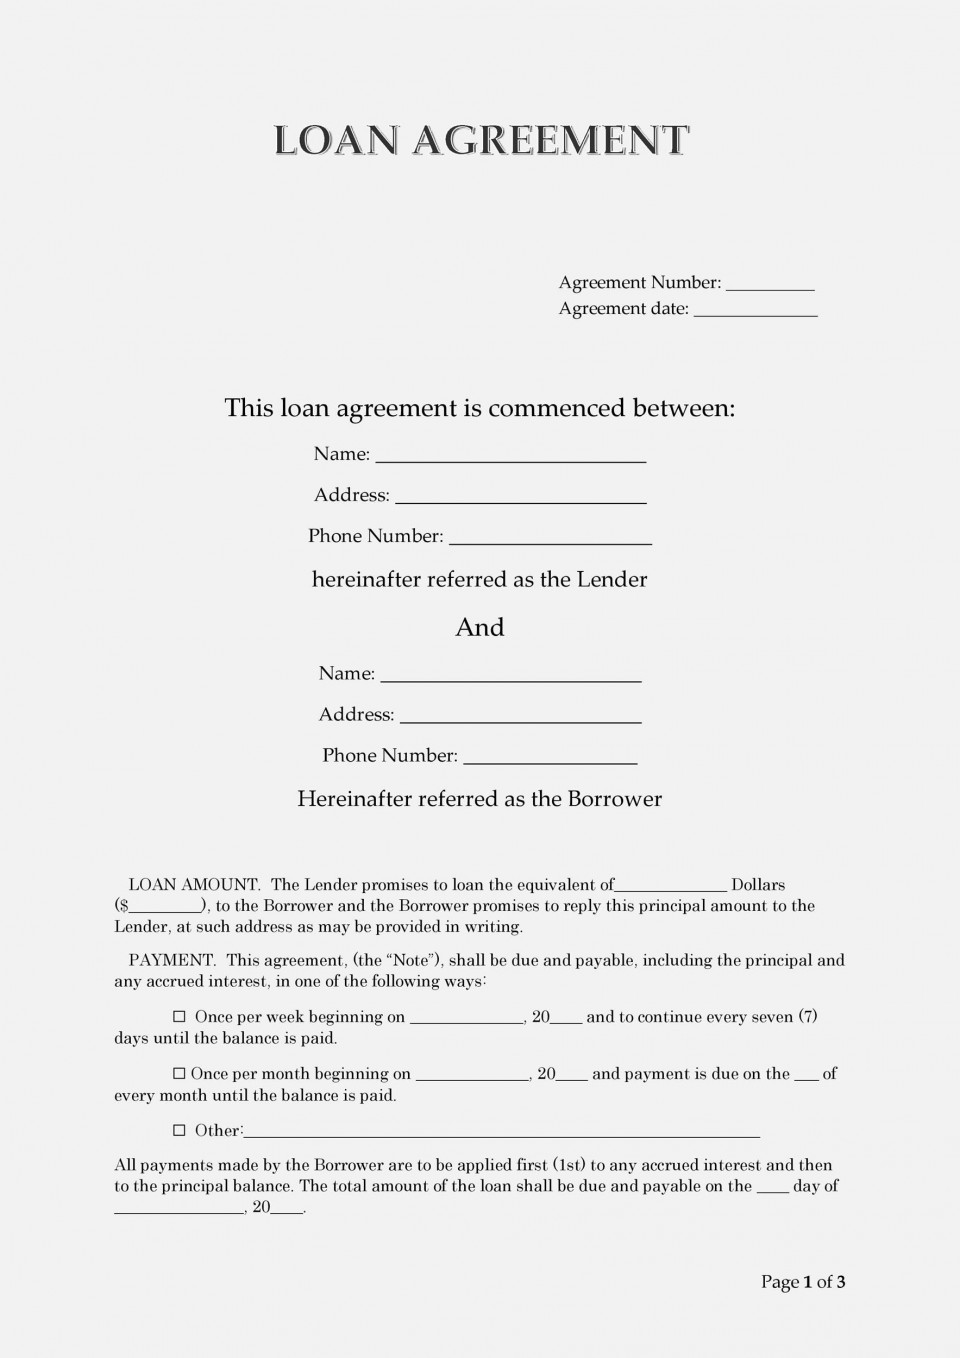 006 Unforgettable Free Loan Agreement Template Inspiration  Ontario Word Pdf Australia South Africa960